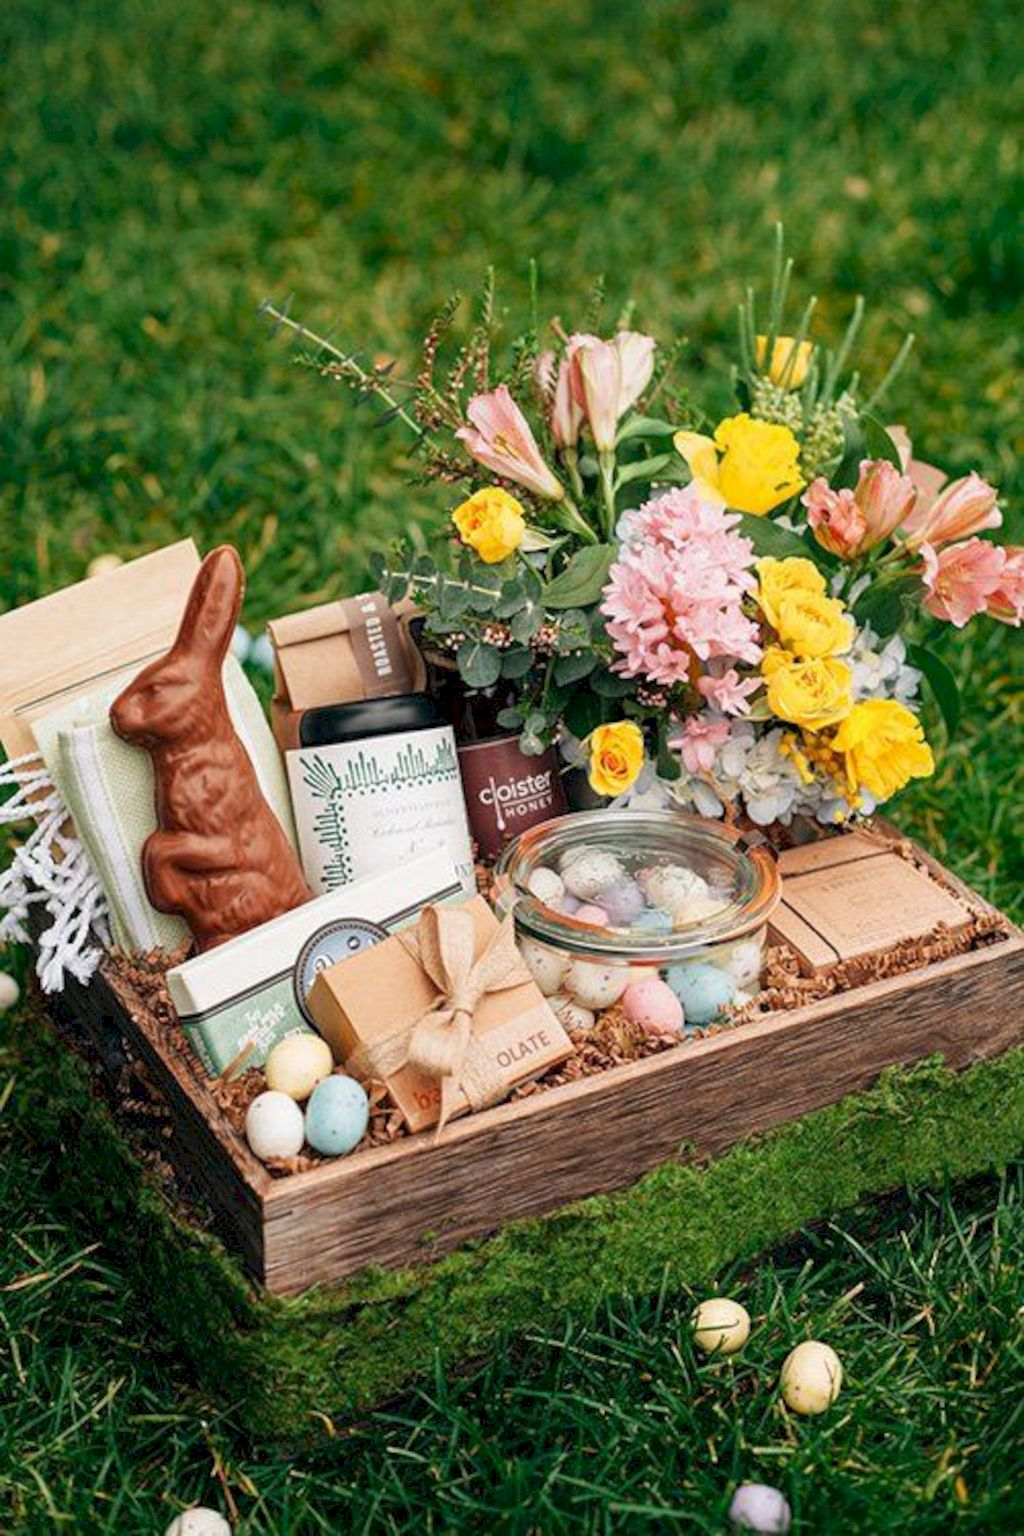 DIY Easter basket ideas made from affordable and recycled materials very charming as Spring celebration accessories Image 32